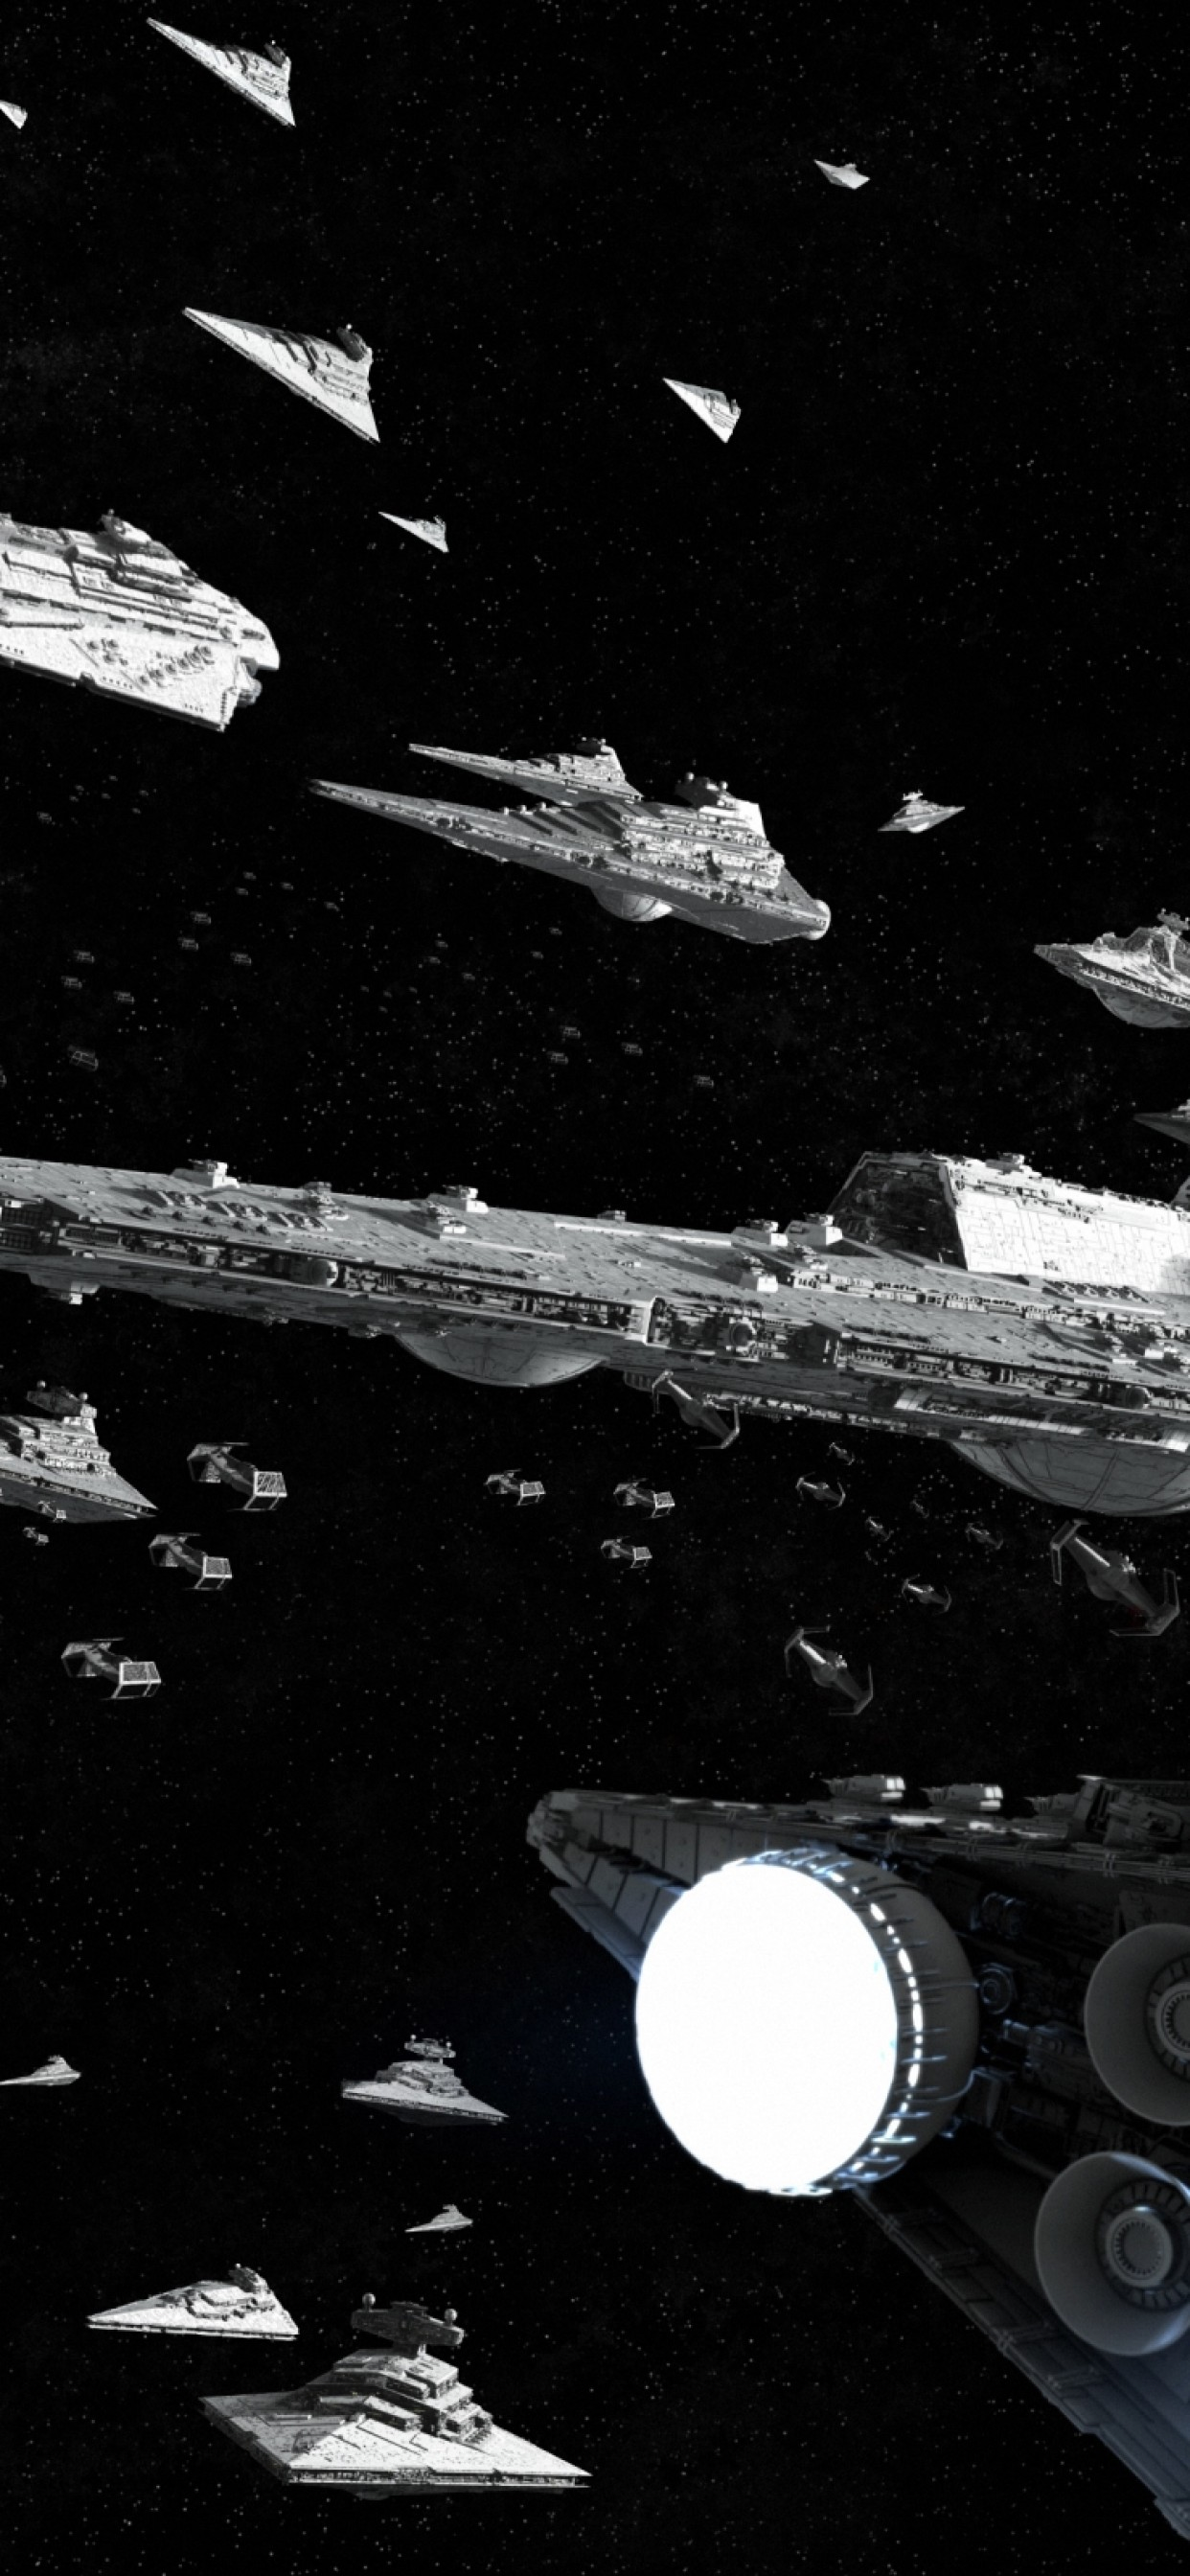 Black Water Black And White Monochrome Photography Star Wars Iphone Xs 3235634 Hd Wallpaper Backgrounds Download